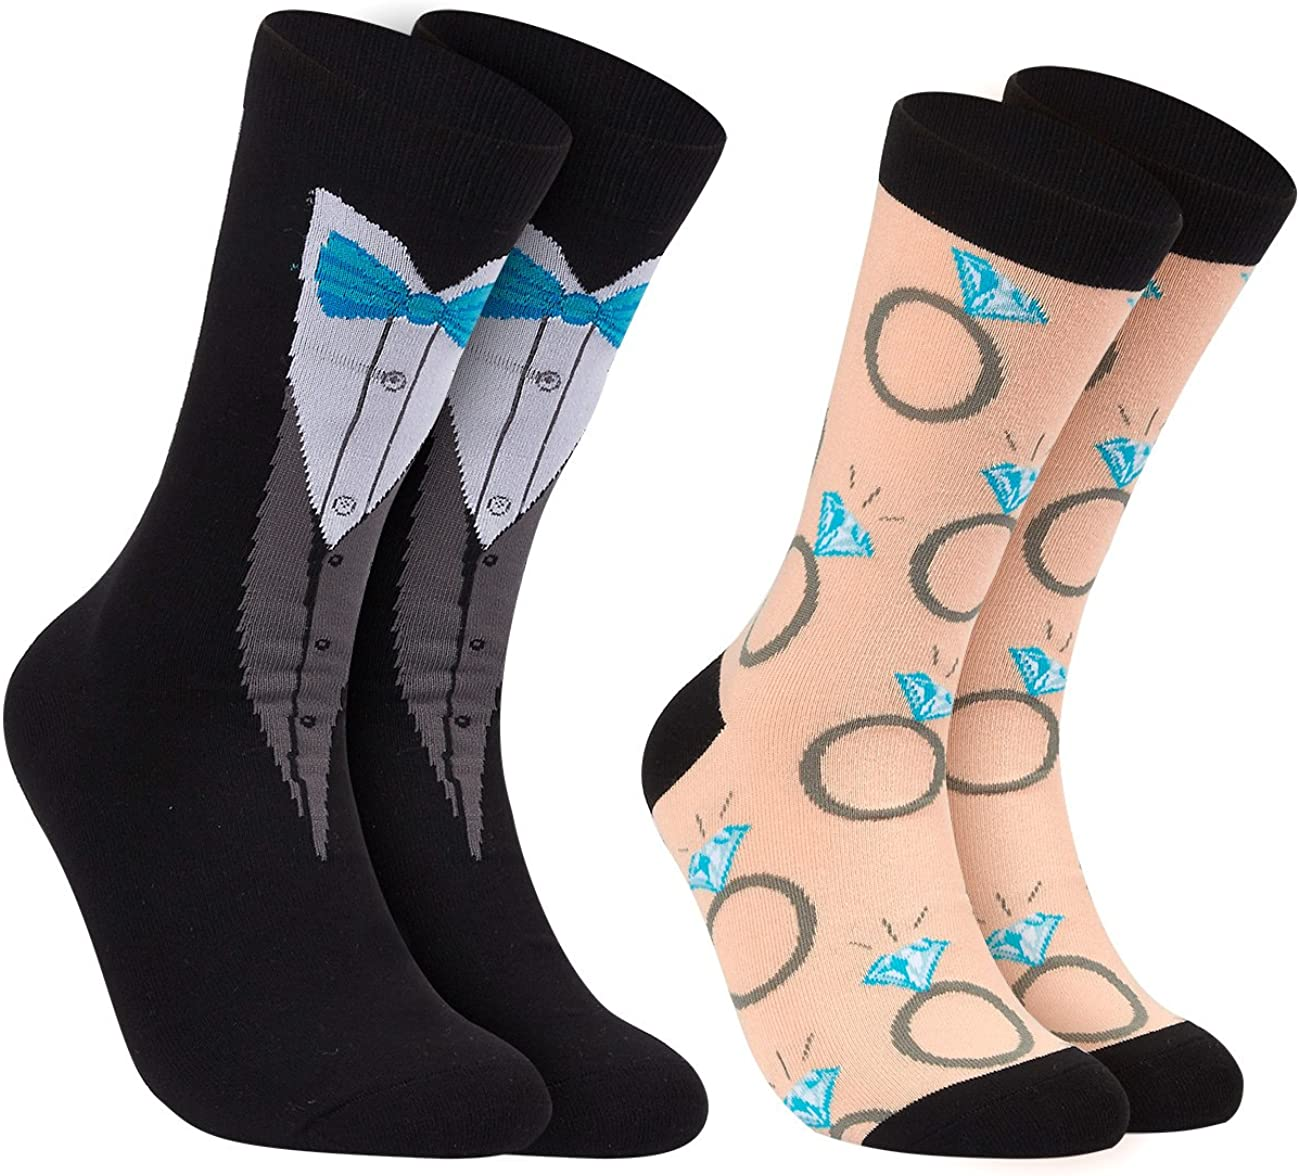 Groom and Bride Crew Socks - 2-Pair Novelty Socks for Party and Wedding